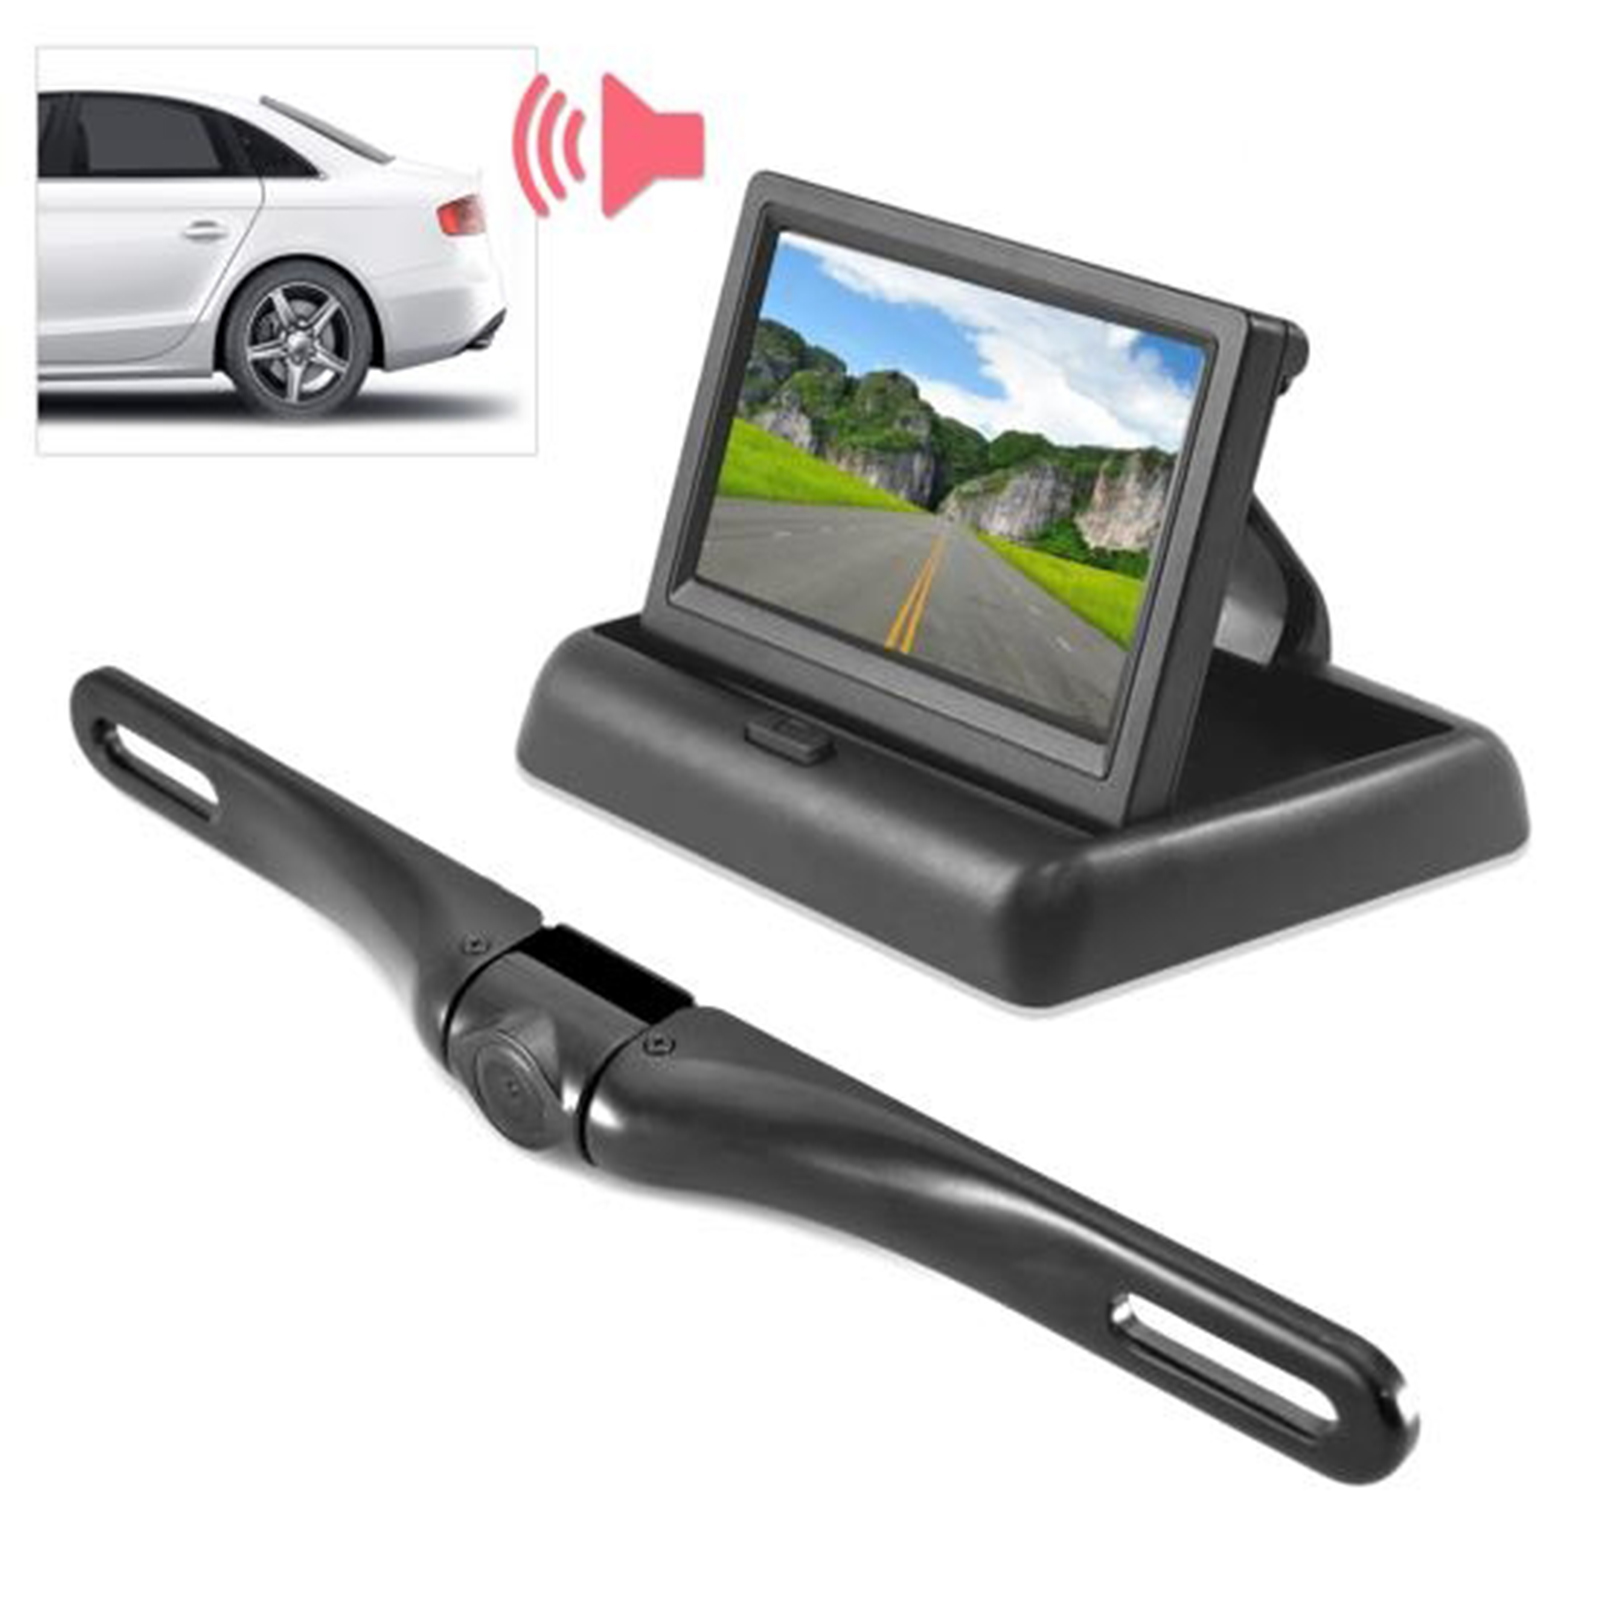 "Rearview Backup Camera & Monitor Driving Assist System, Parking / Reverse Speaker Alarm Depth Sensor, Waterproof Night Vis Angle Adjustable Cam, 4.3"" LCD Display"